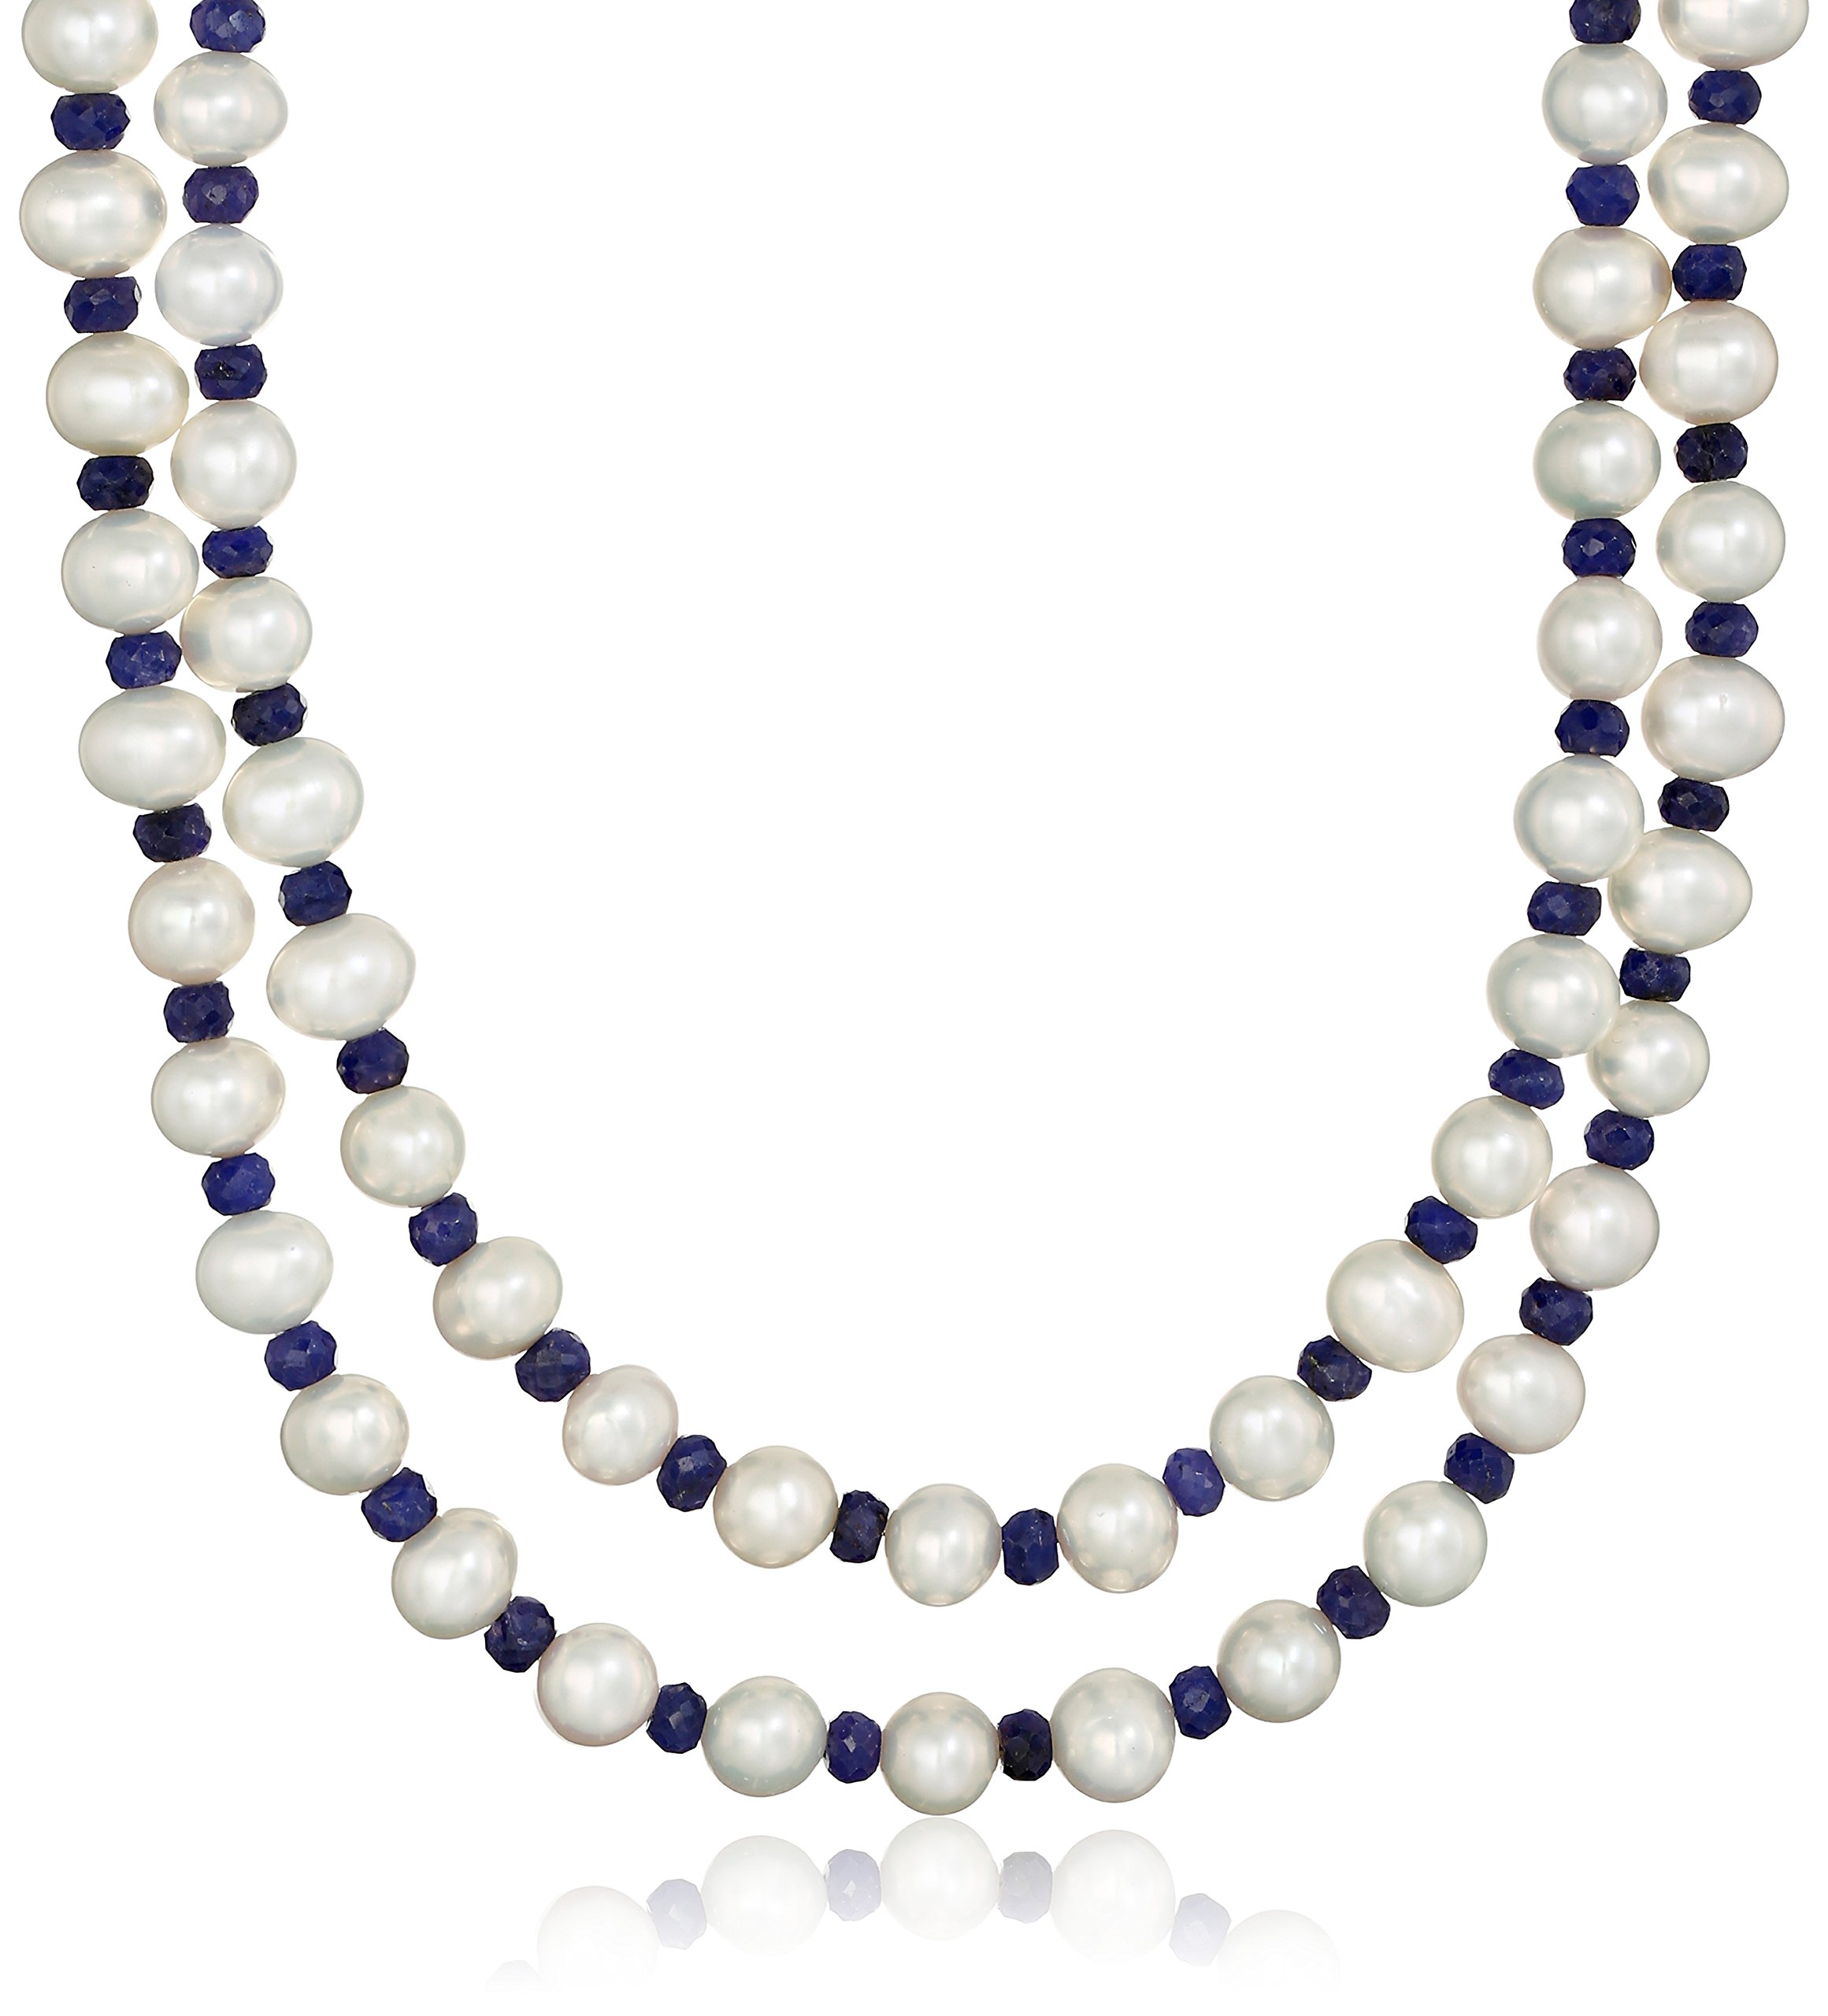 7-7.5mm White Cultured Freshwater Pearl with 4-5mm Blue Sapphire Gemstone Endless Strand Necklace, 50''